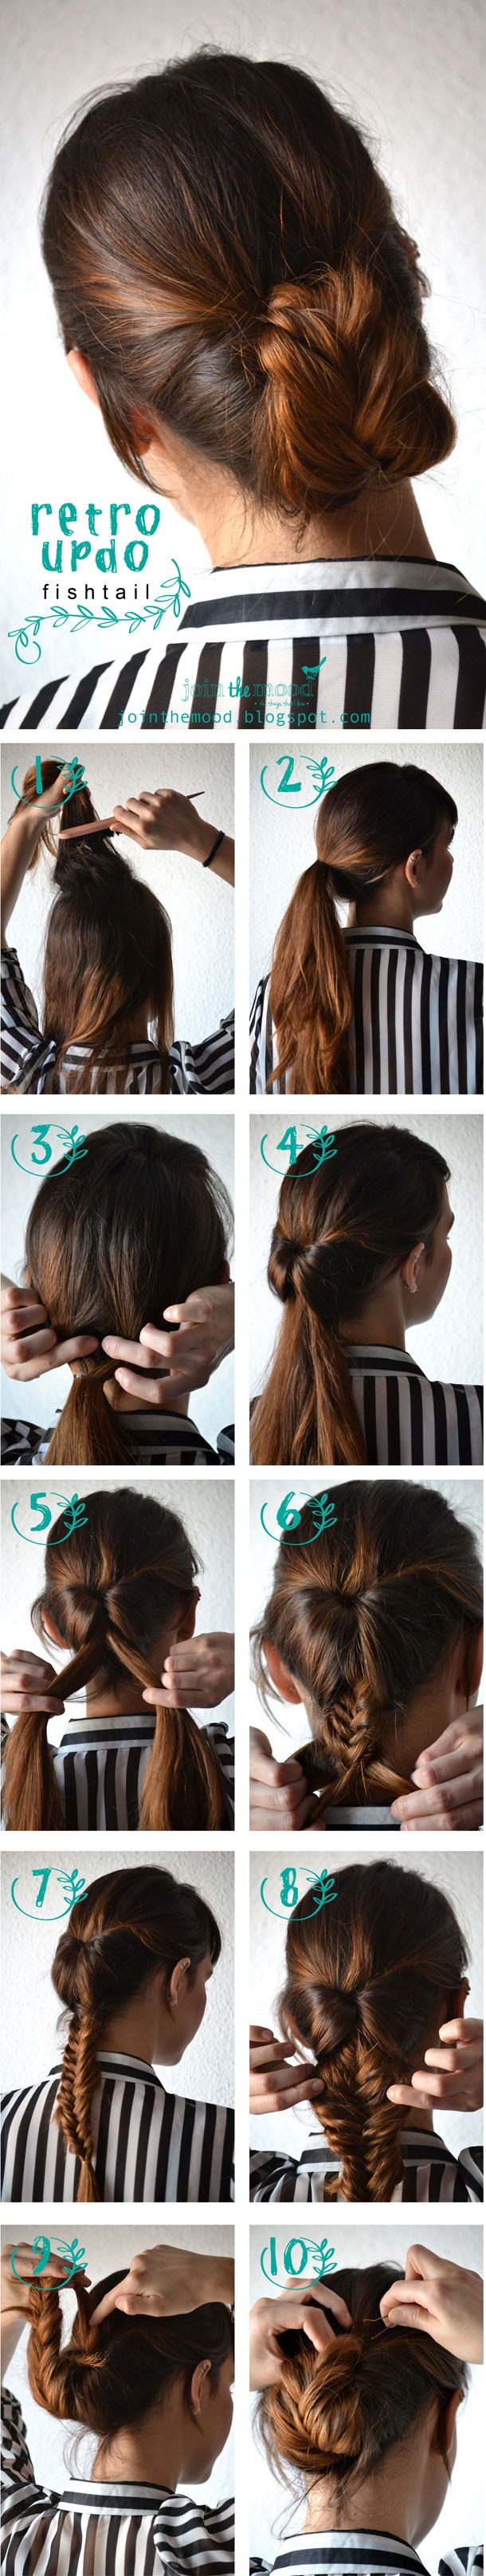 retro updo fishtail braid for prom